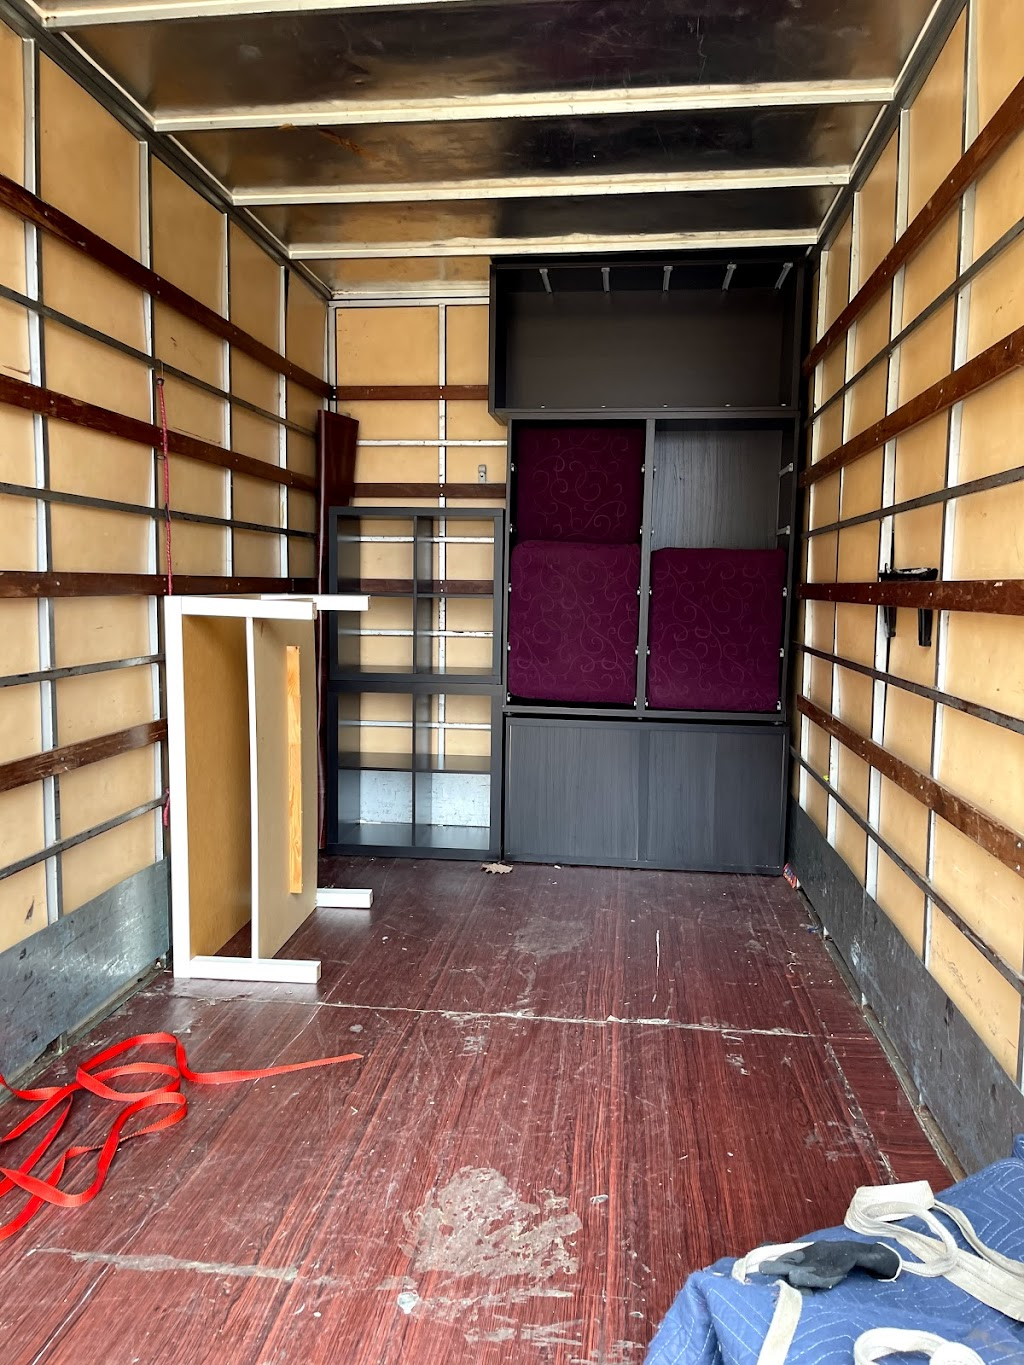 K&Mremovals | moving company | 78/566 Cotter Rd, Wright ACT 2611, Australia | 0431469073 OR +61 431 469 073